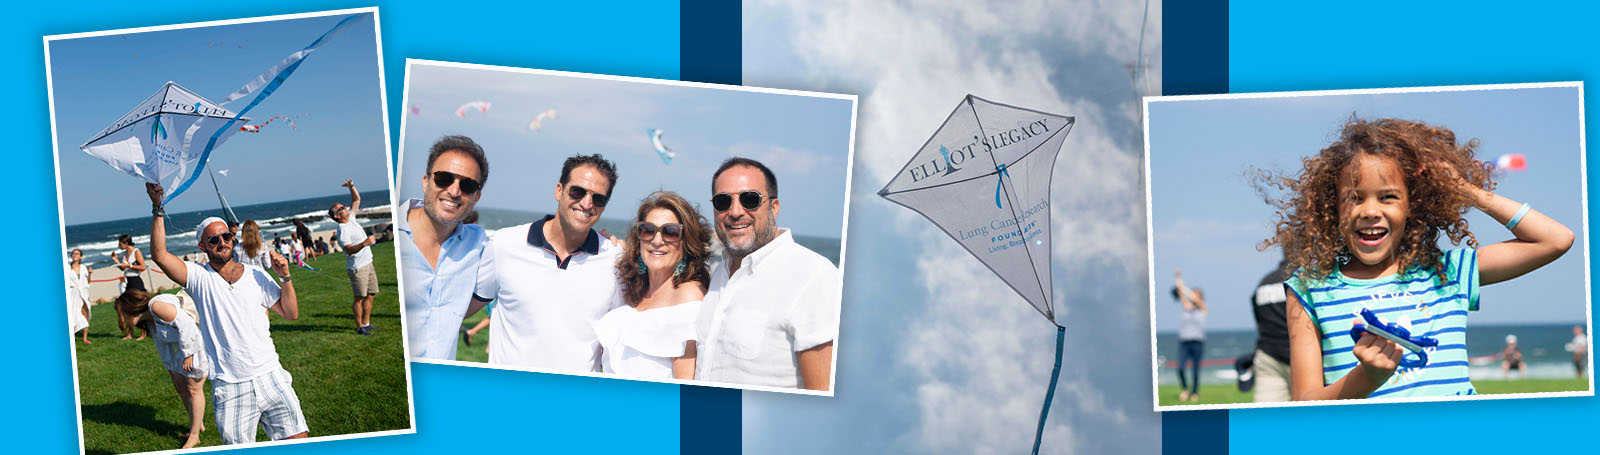 Free to Breathe Kites for a Cure